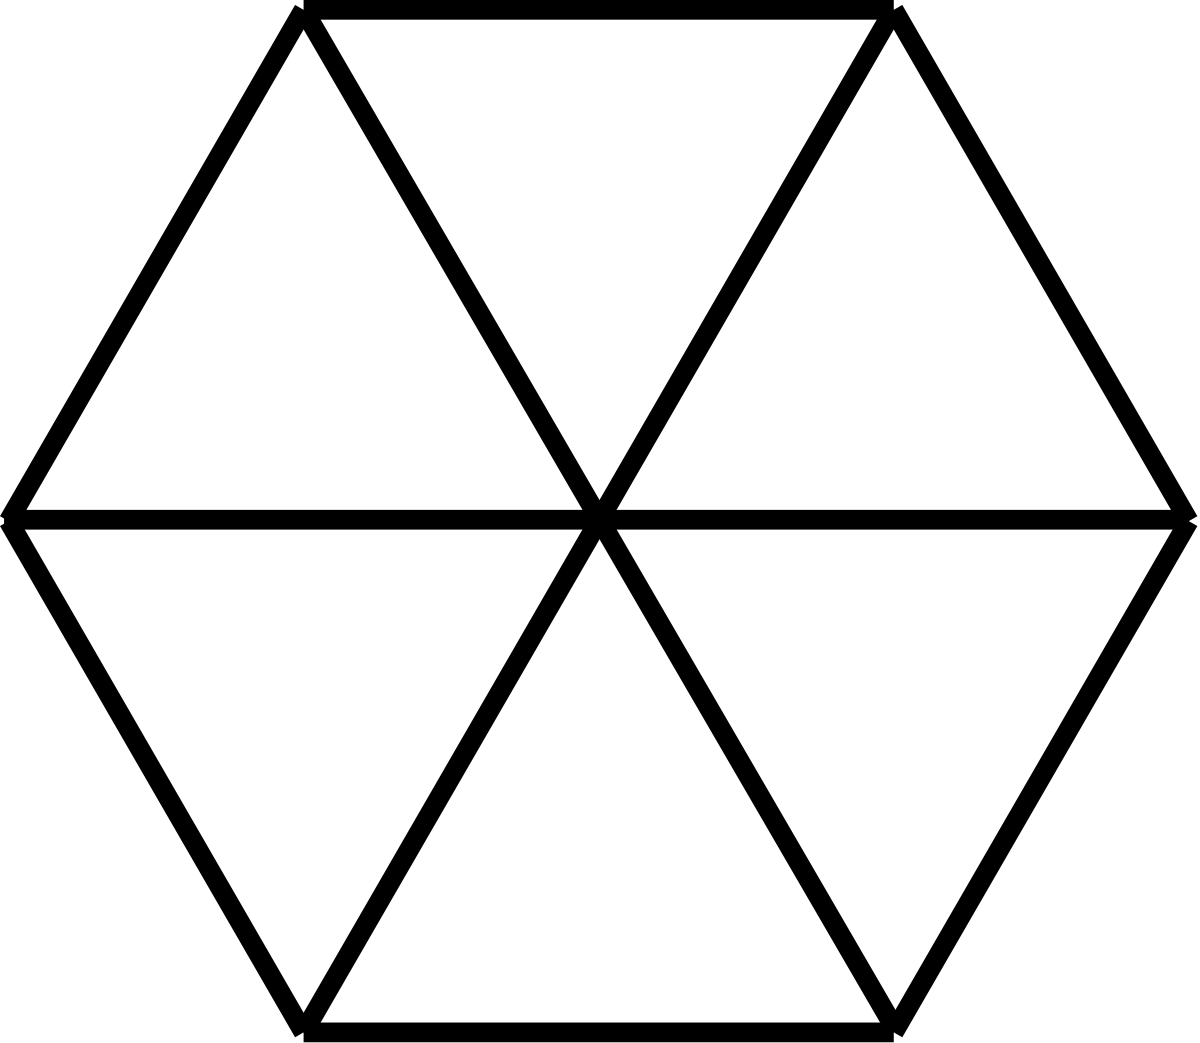 Outline Image Of Hexagon Clipart